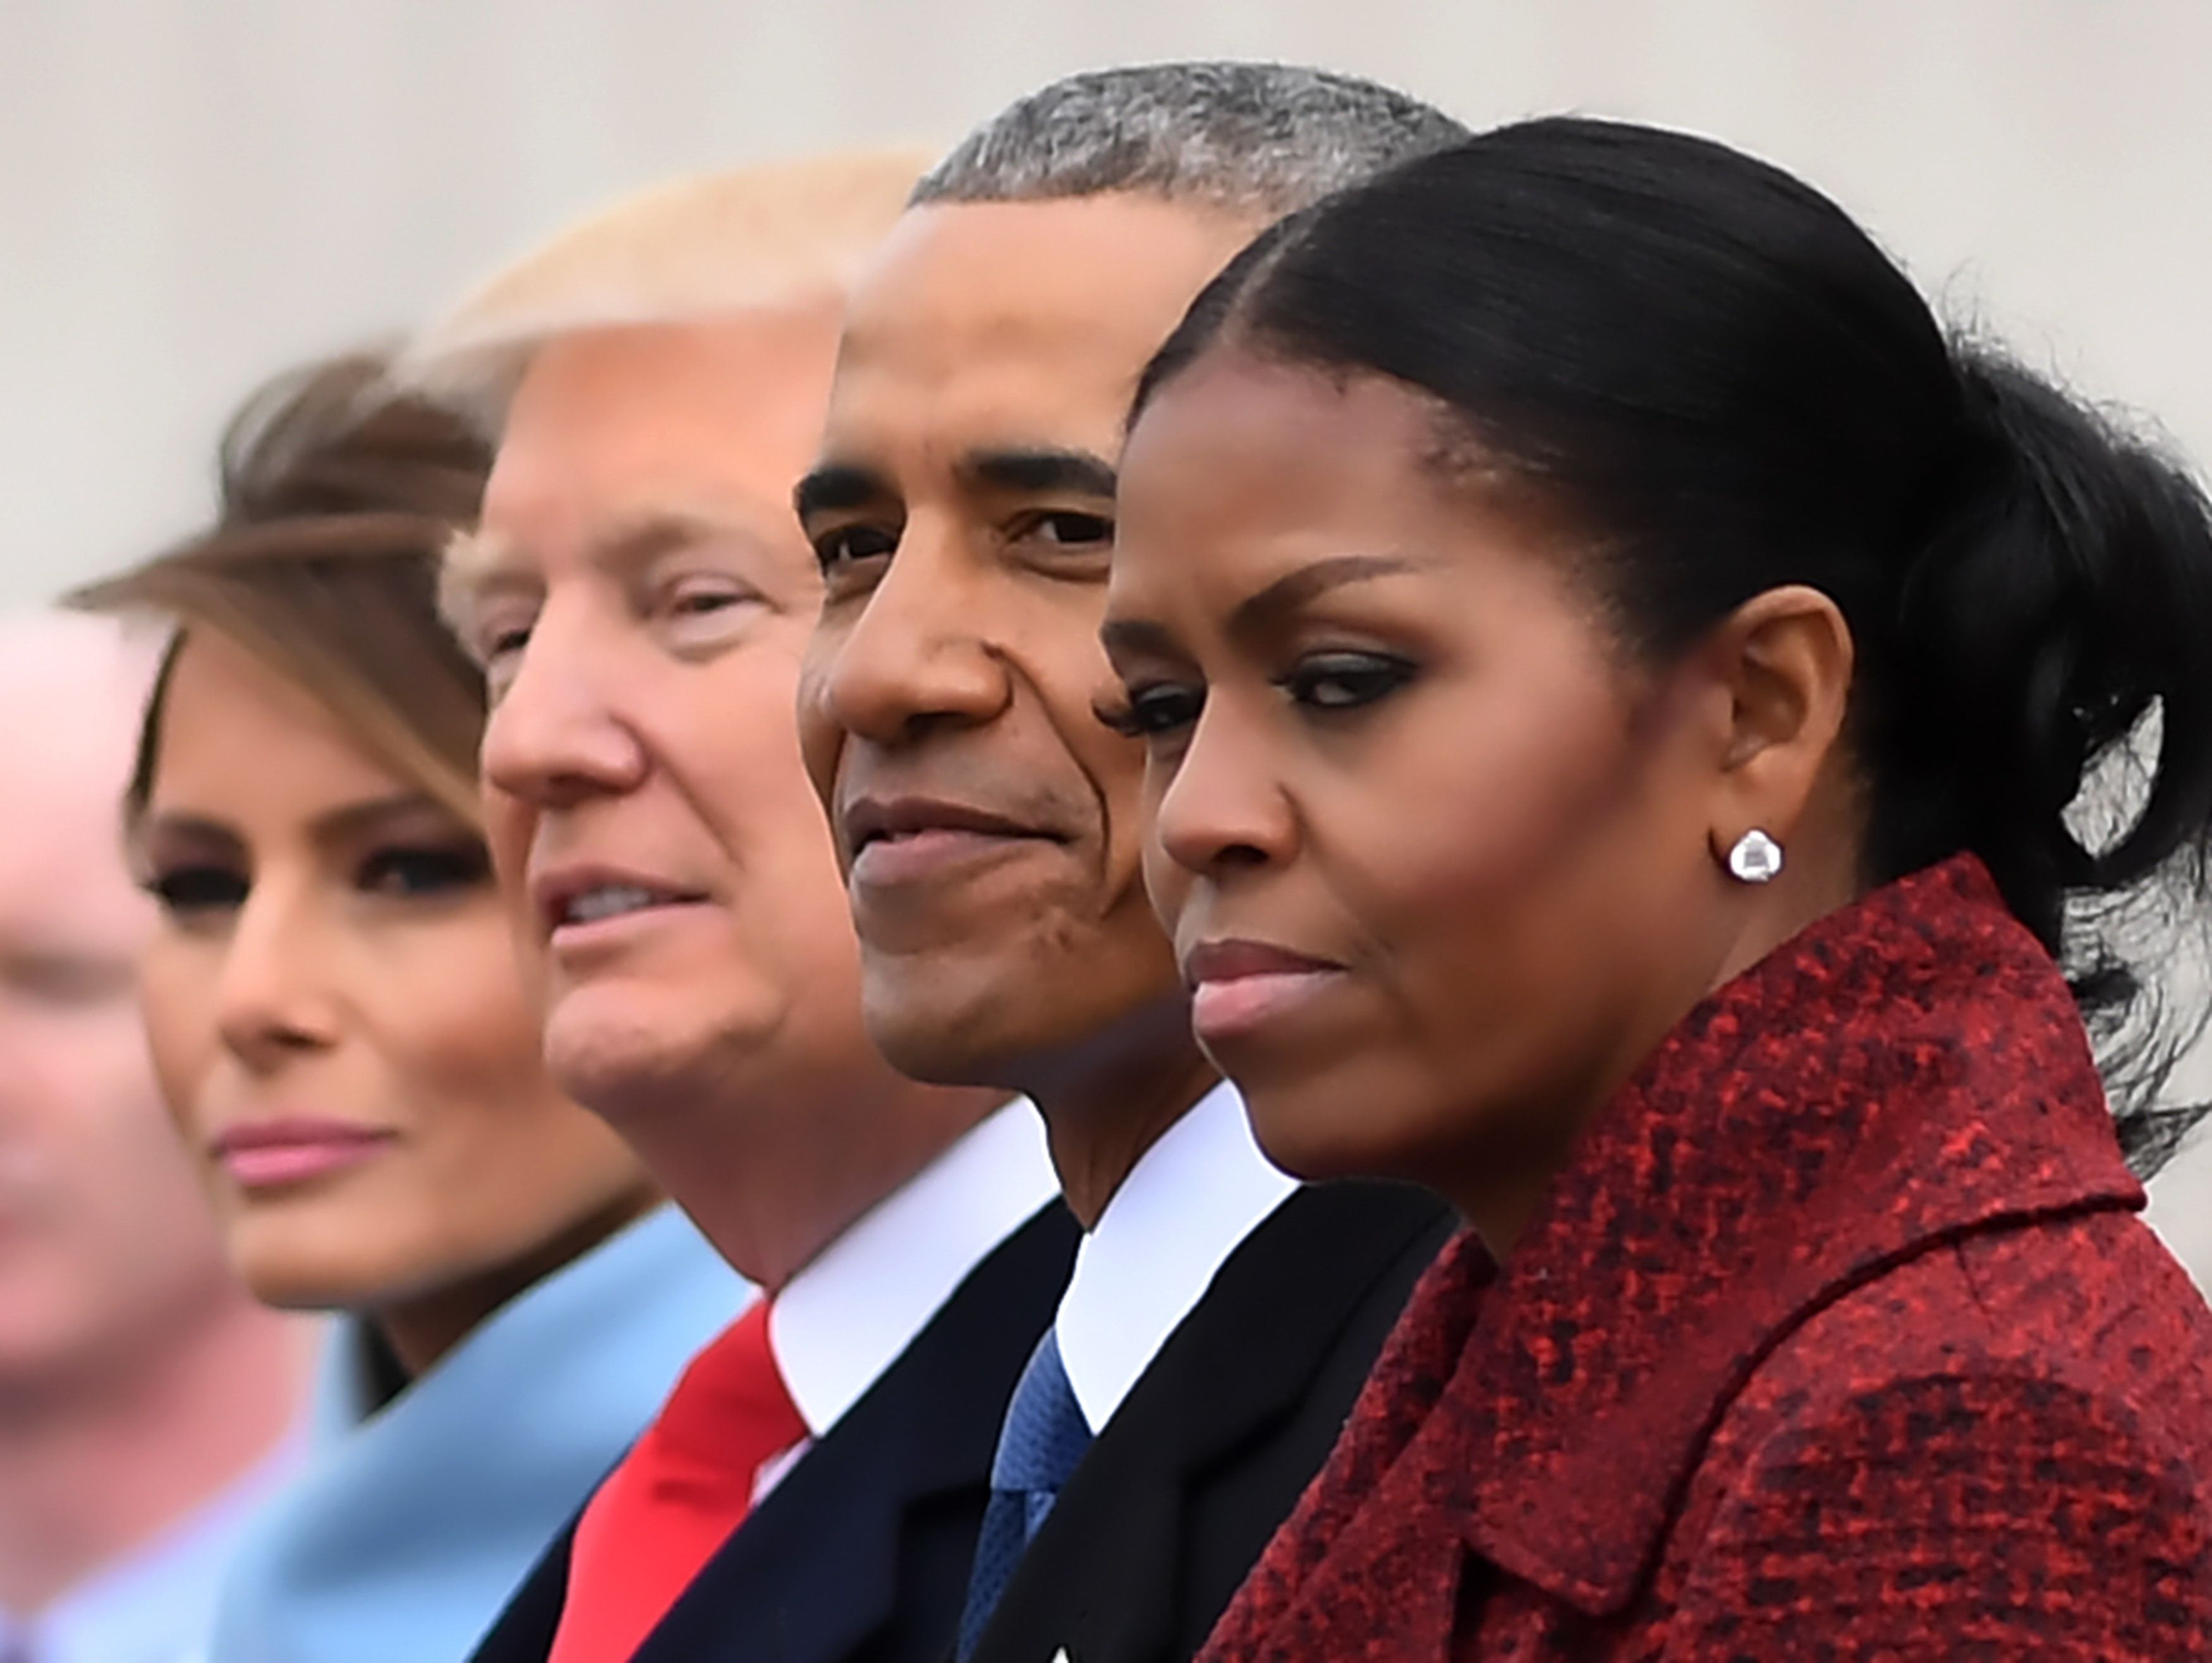 (FILES) L-R: First Lady Melania Trump, President Donald Trump,former President Barack Obama, Michelle Obama at the US Capitol after inauguration ceremonies at the in Washington, DC, on January 20, 2017. While the new US president has shown a capacity to change, both his tone and his positions, he has been unable to show the world a 'new' Trump, with a steady presidential style and a clearly articulated worldview. As the symbolic milestone of his 100th day in power, which falls on April 29, 2017, draws near, a cold, hard reality is setting in for the billionaire businessman who promised Americans he would 'win, win, win' for them. At this stage of his presidency, he is the least popular US leader in modern history (even if his core supporters are still totally behind him.) / AFP PHOTO / JIM WATSON / TO GO WITH AFP STORY, US-politics-Trump-100days         (Photo credit should read JIM WATSON/AFP/Getty Images)